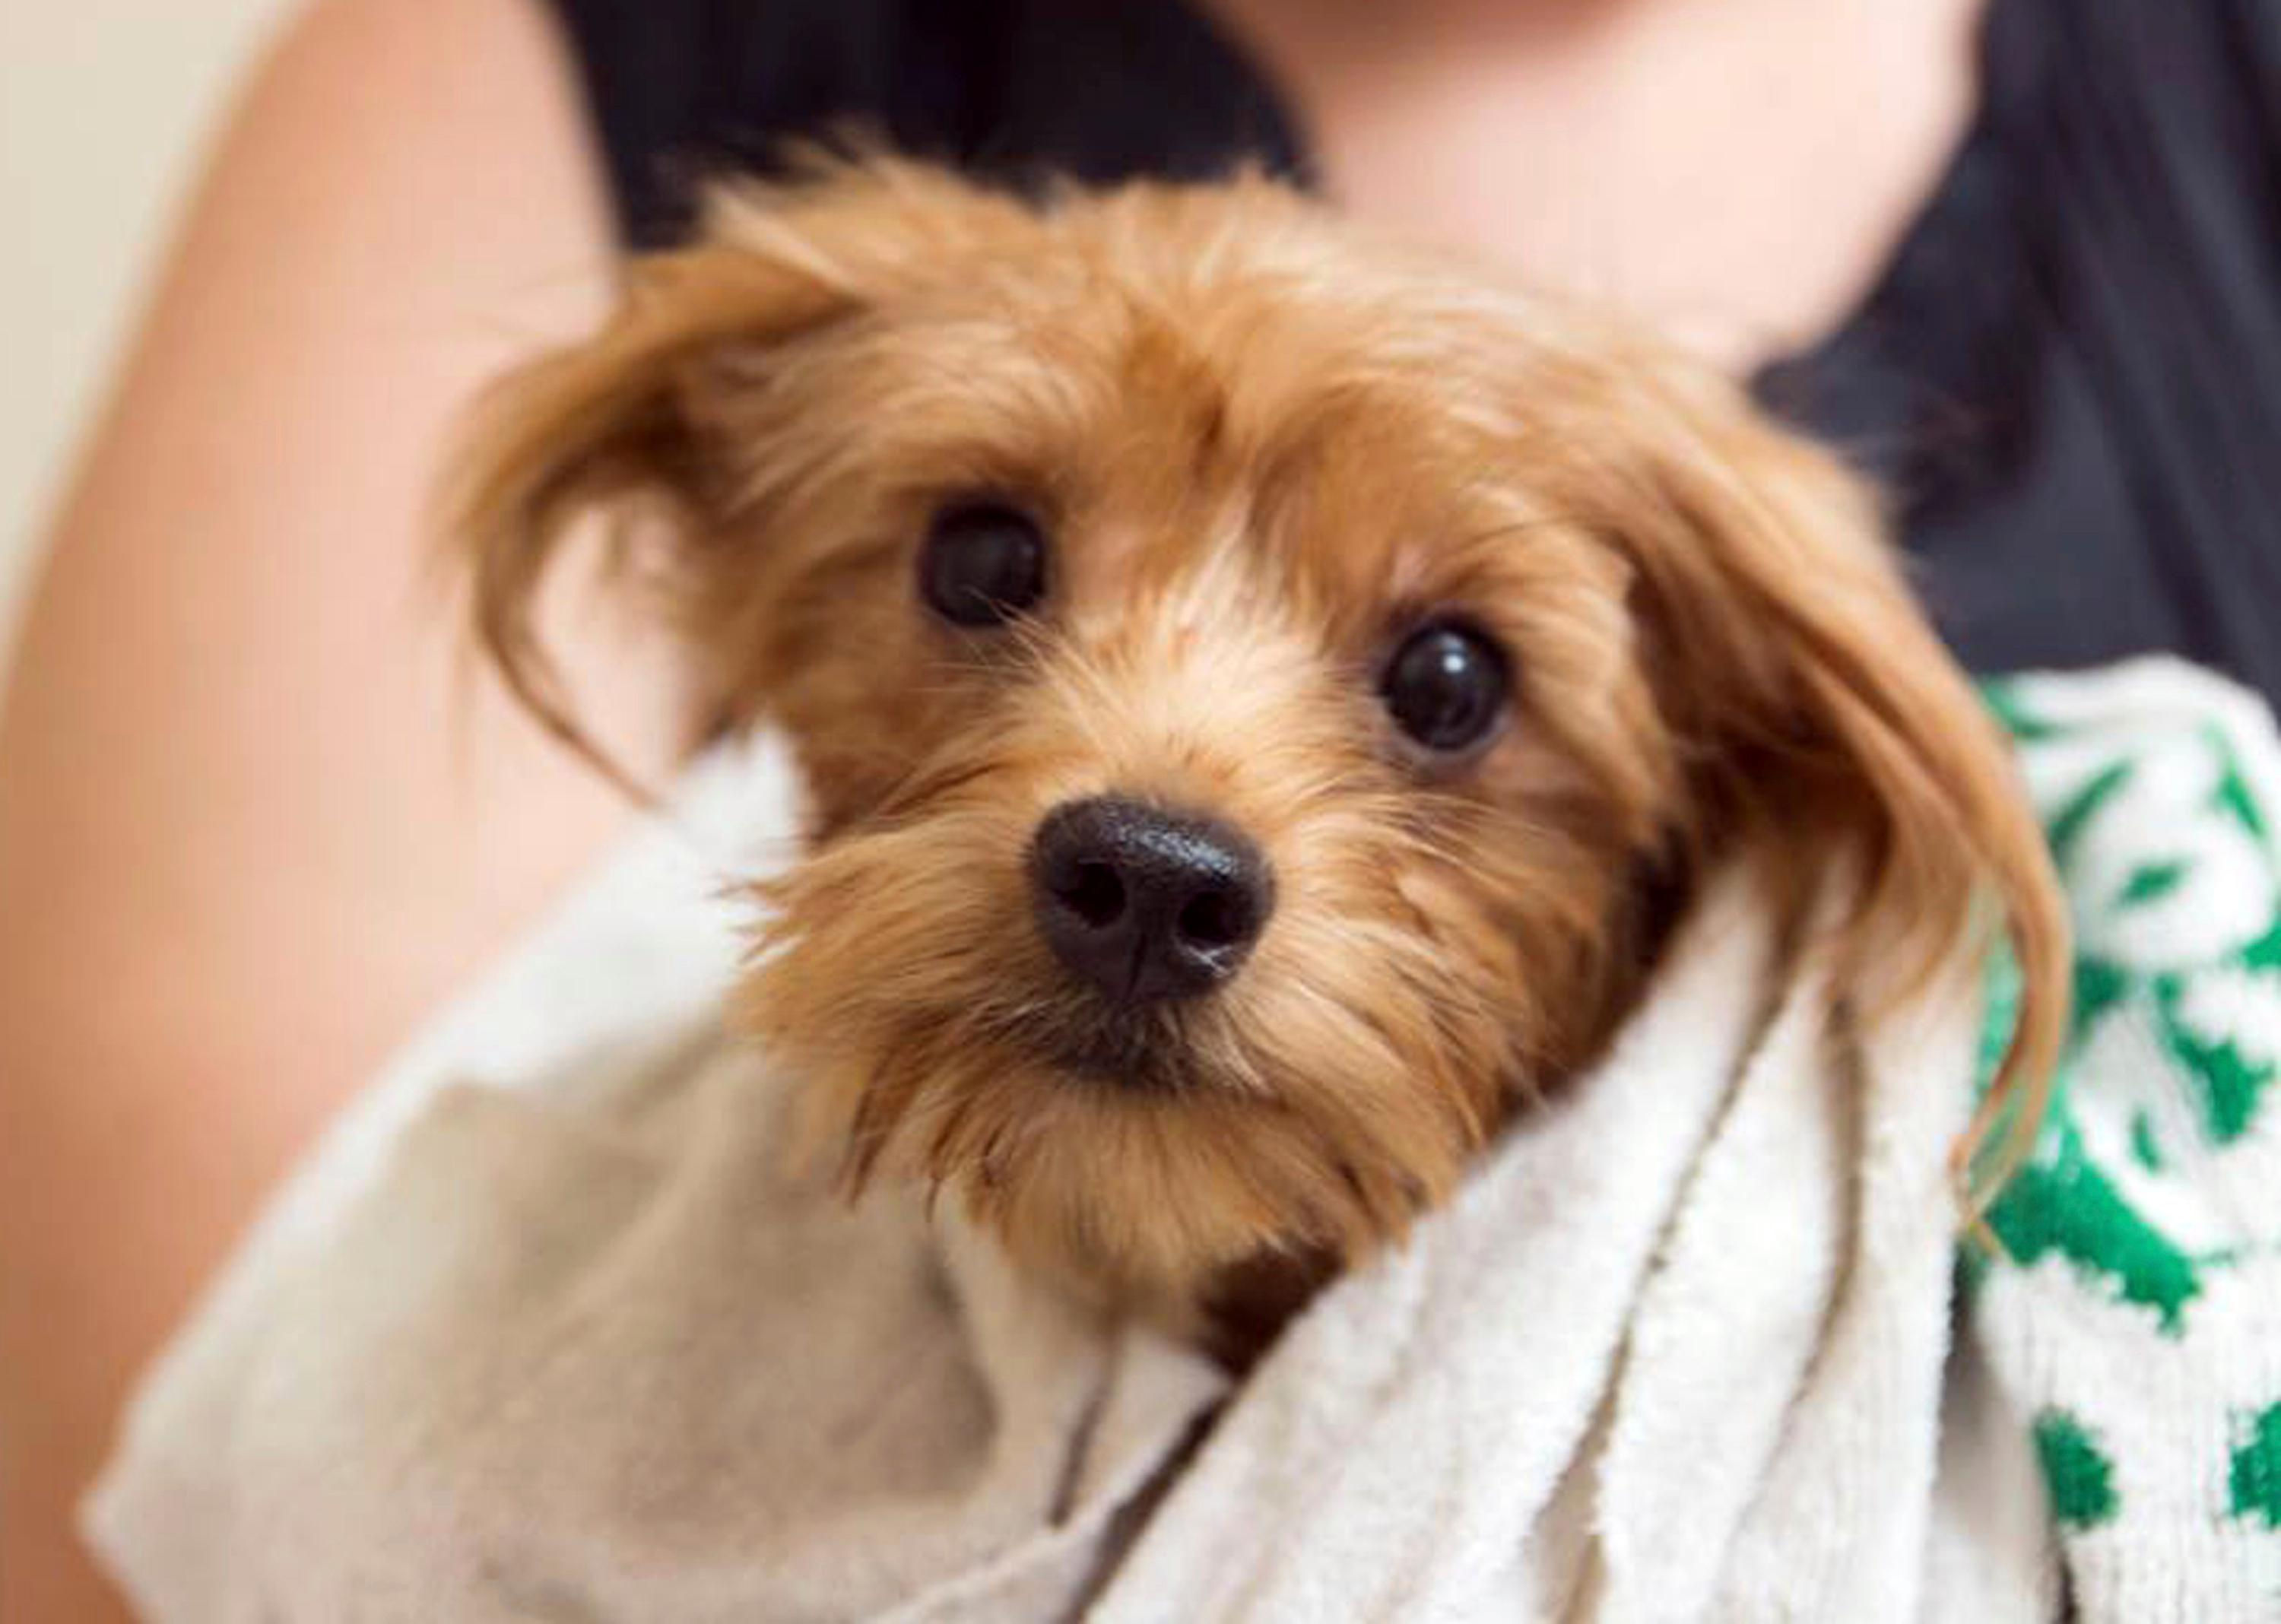 This 2017 photo provided by the San Diego Humane Society shows a groomed dog rescued from a scene where over 170 Yorkshire terrier and Yorkie mix dogs were discovered Jan. 20, 2017, in Poway, Calif. A San Diego County couple has pleaded guilty to hoarding the dogs in filthy conditions, entering pleas Monday, June 12, to animal neglect. They face probation and counseling and can't own pets for a decade. (San Diego Humane Society via AP)